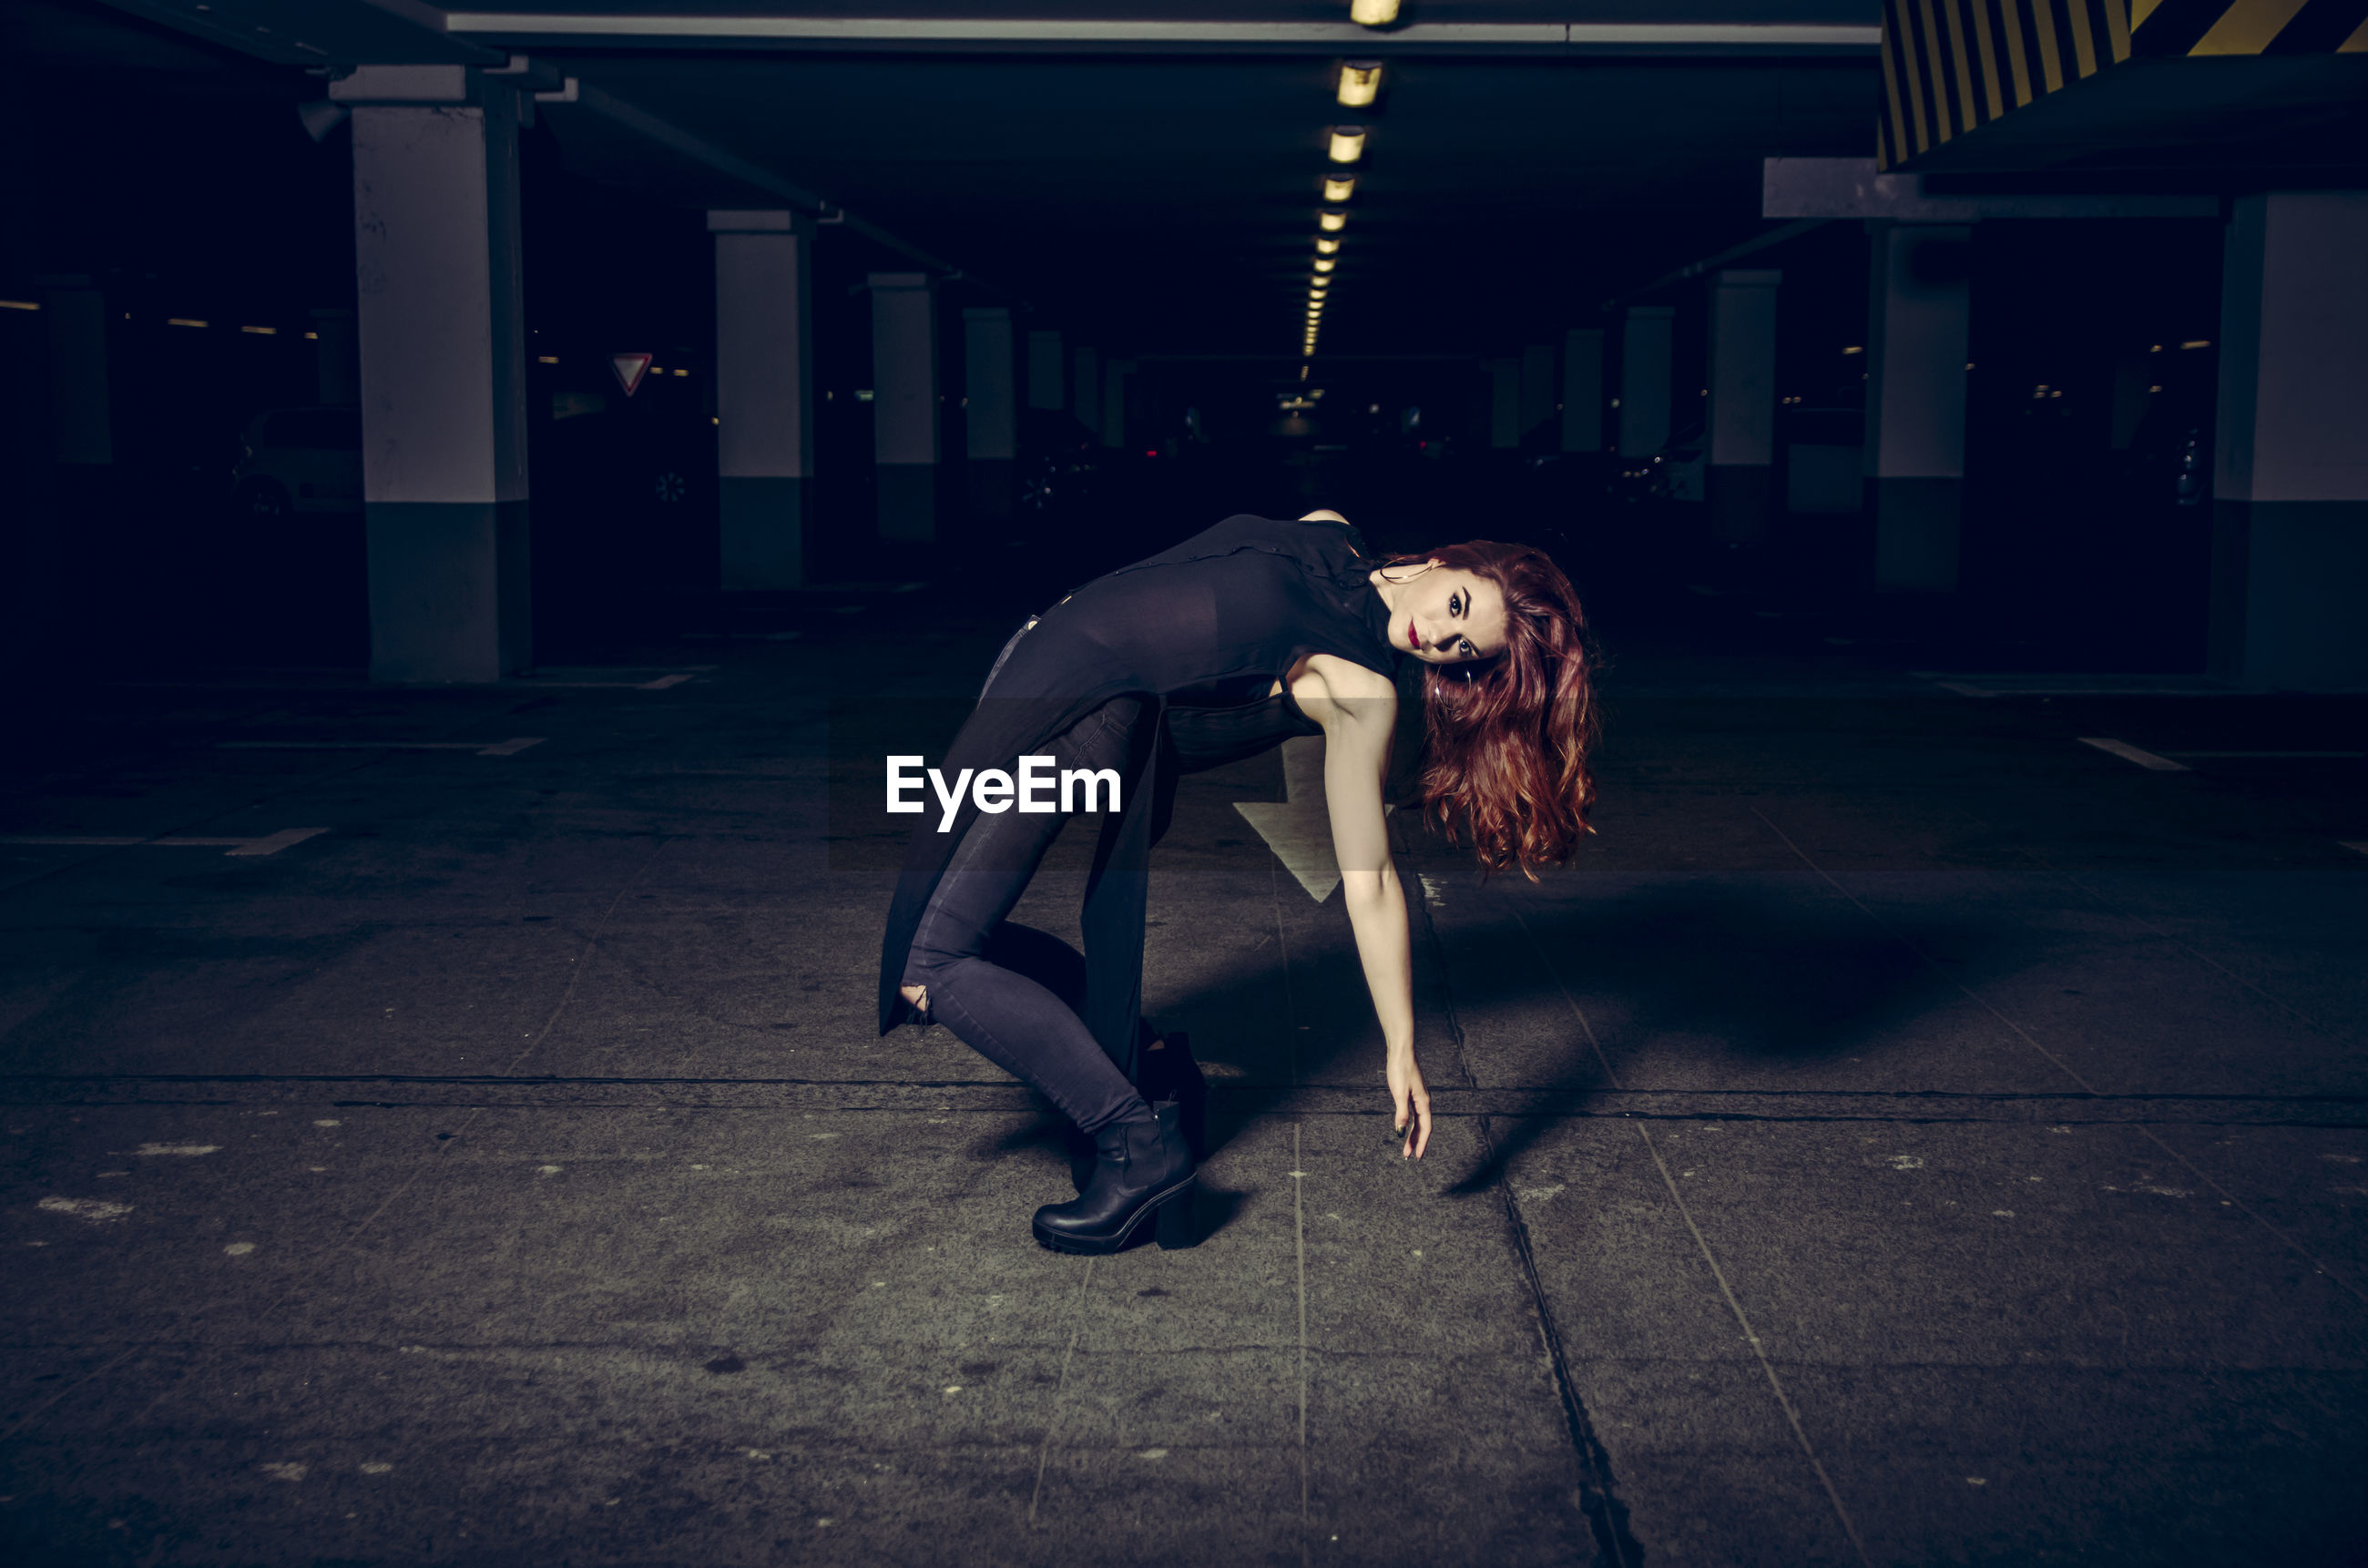 Redhead woman bending over backwards in parking lot at night